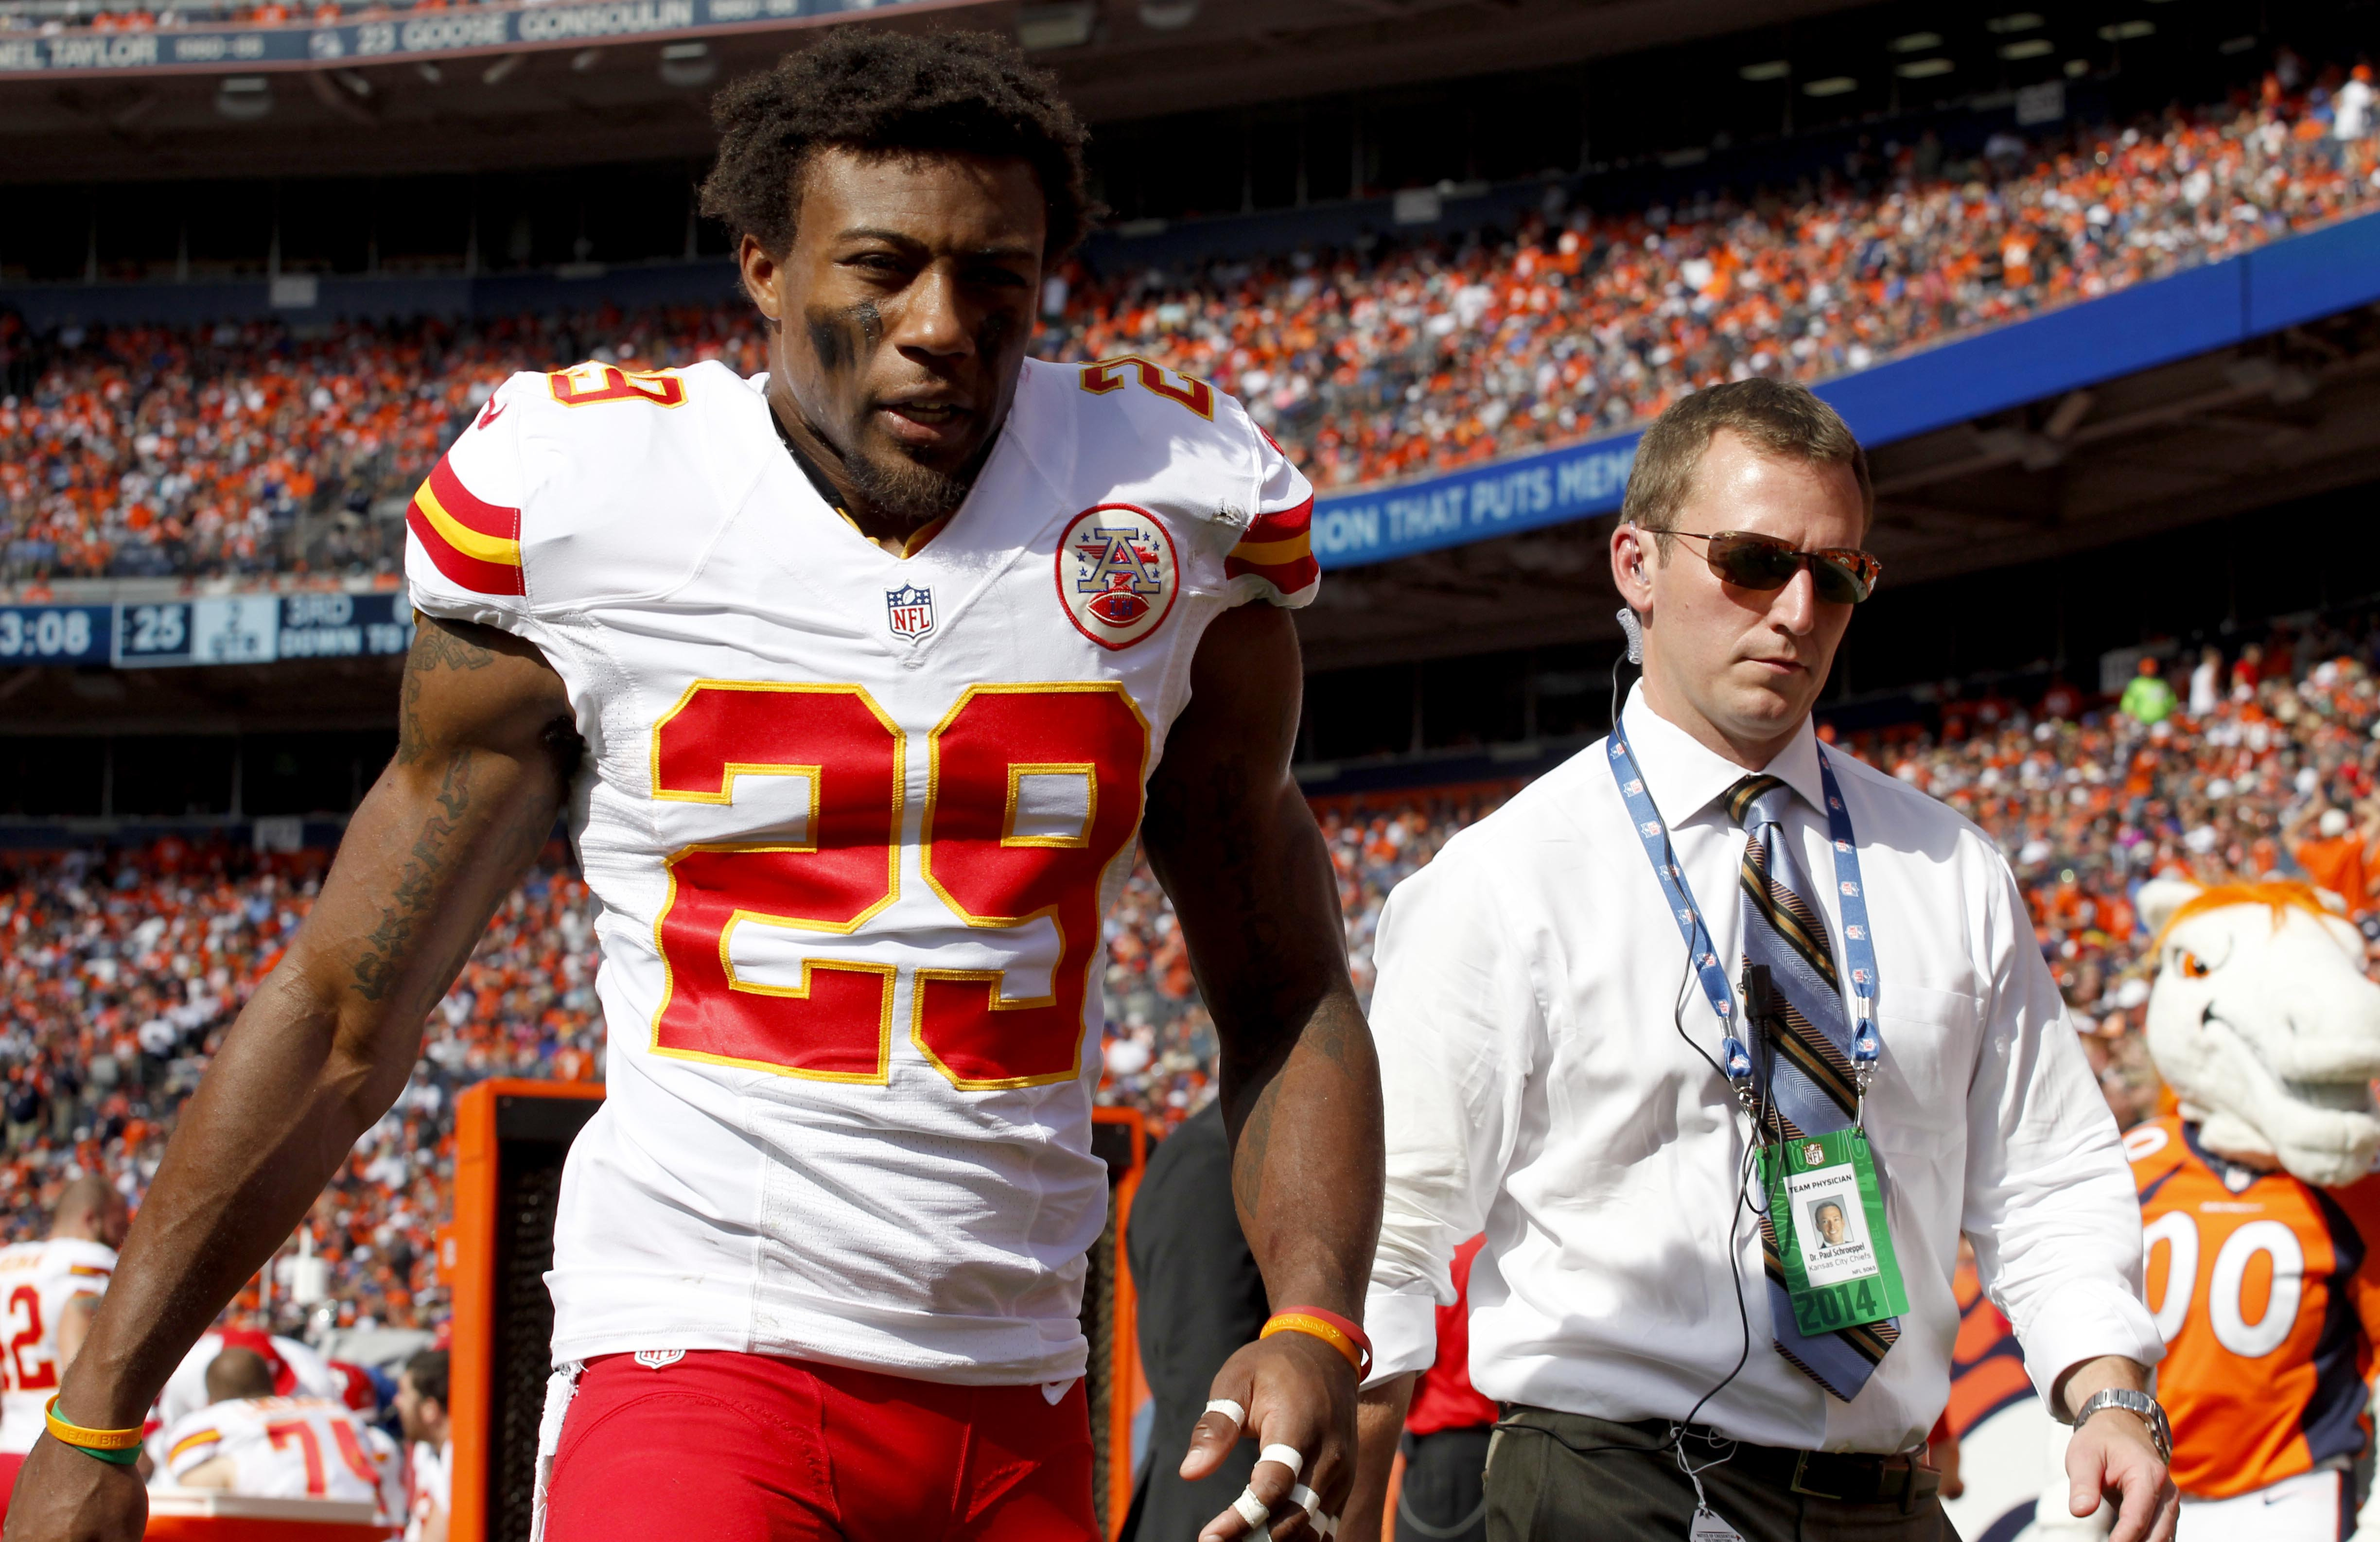 Eric Berry of Chiefs has mass in chest could be lymphoma